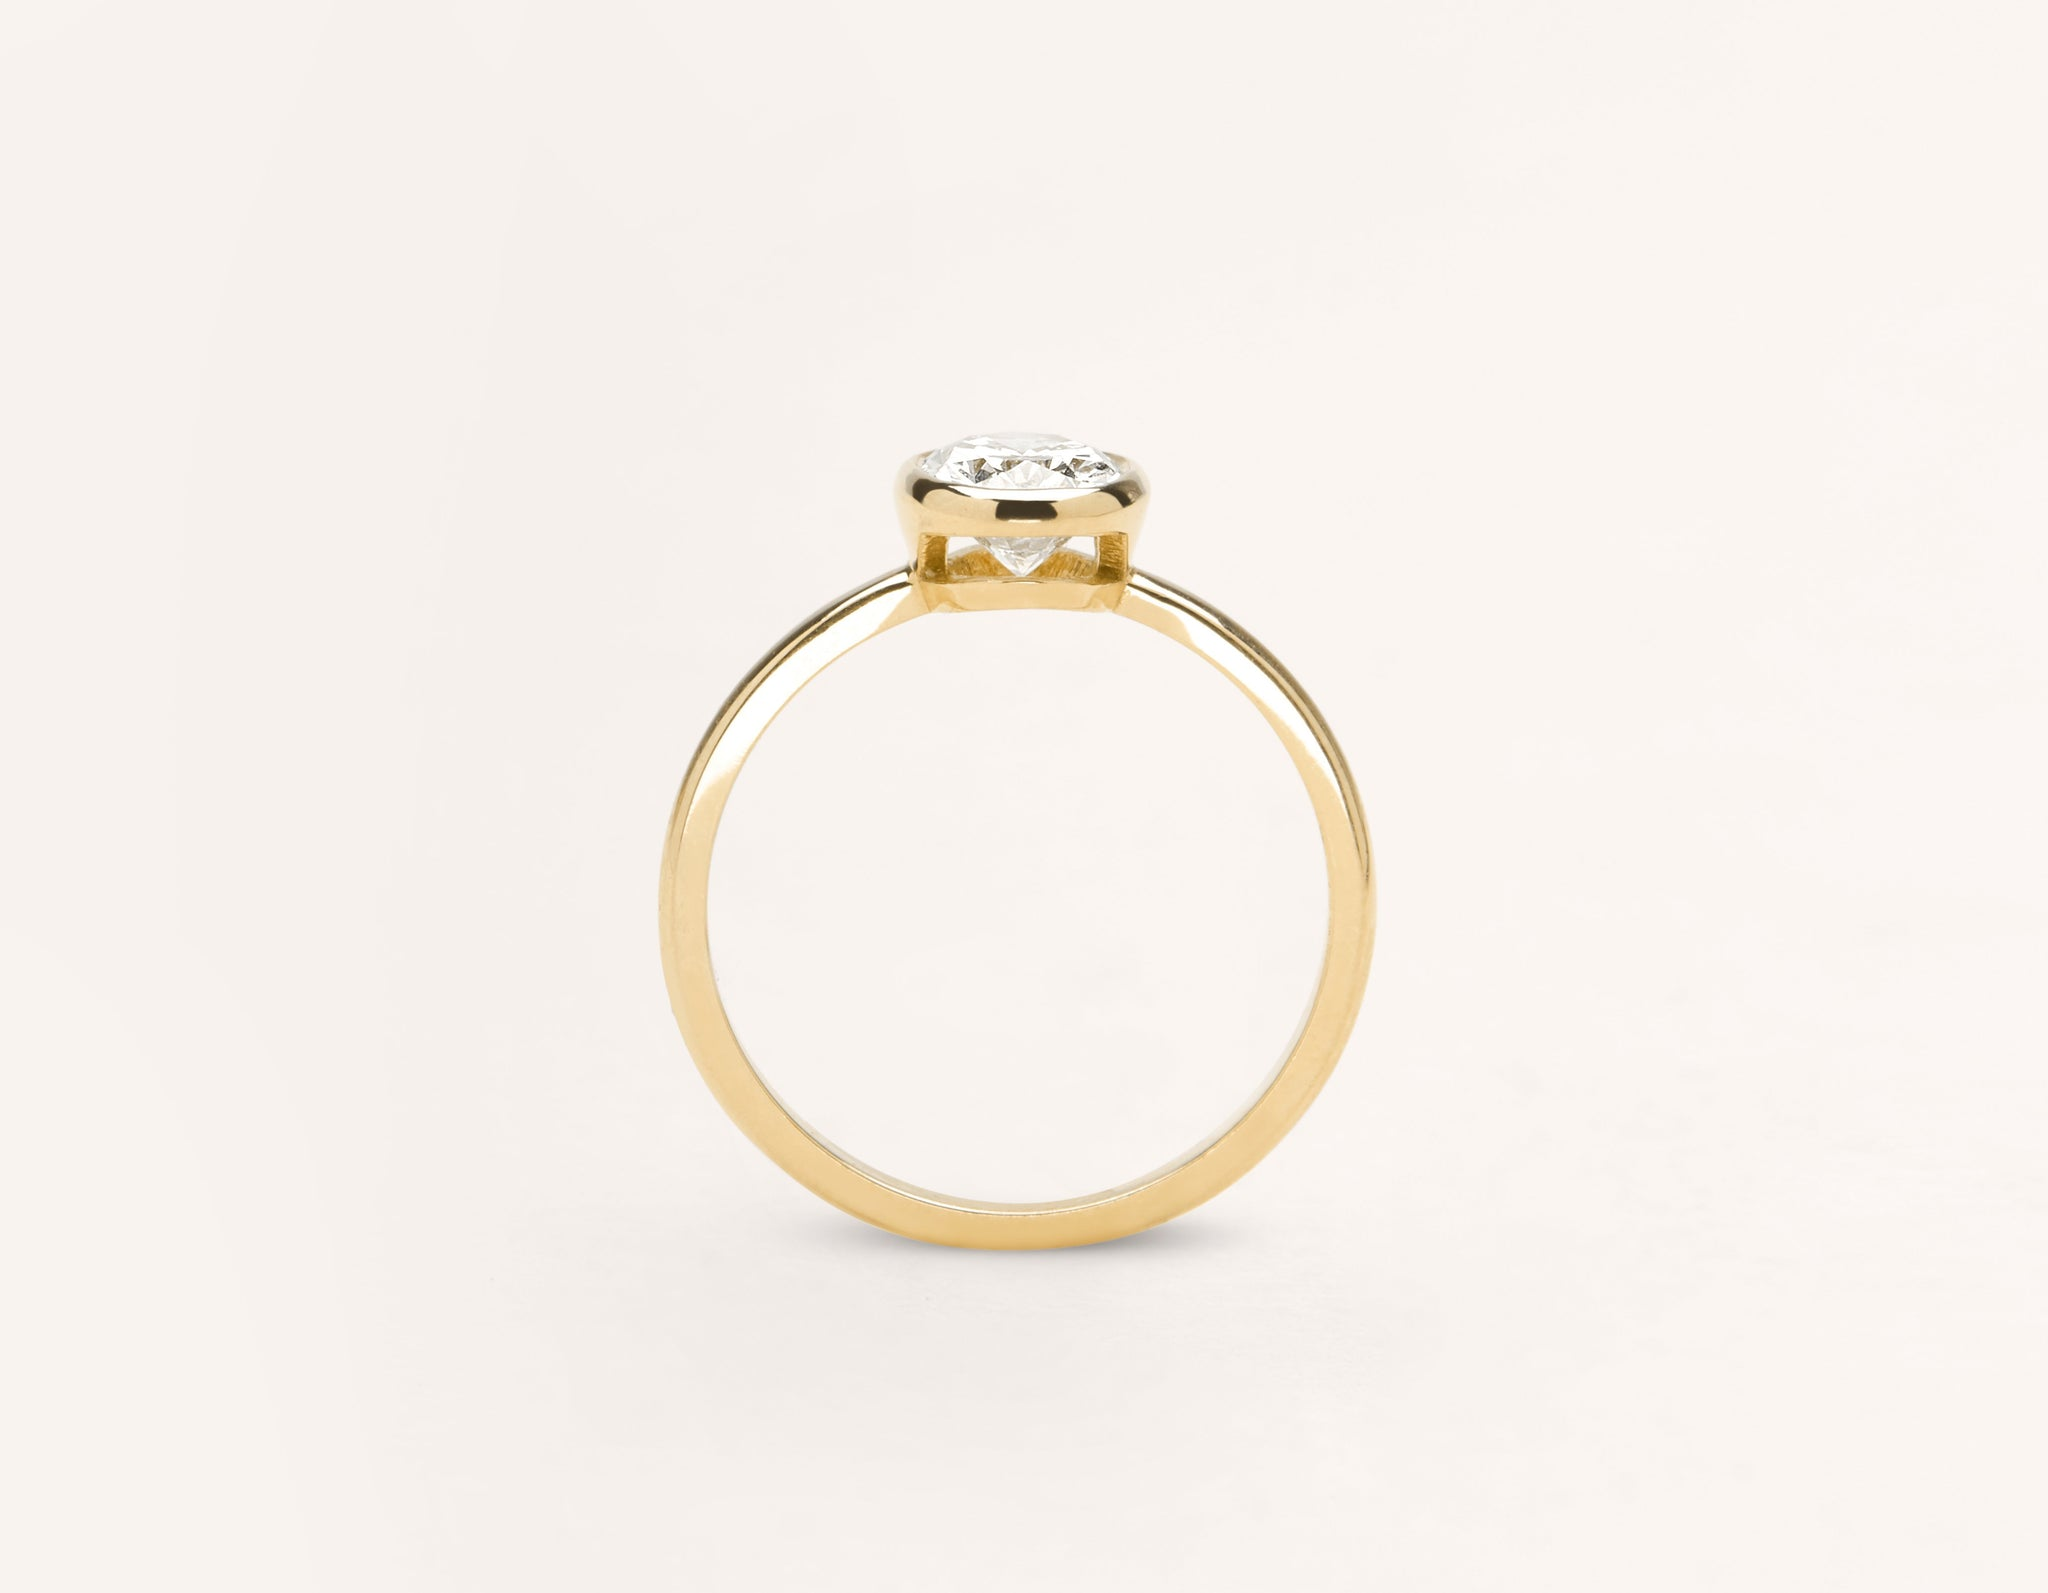 Vrai and Oro modern classic Oval Bezel diamond engagement ring 18k solid yellow gold sustainable jewelry